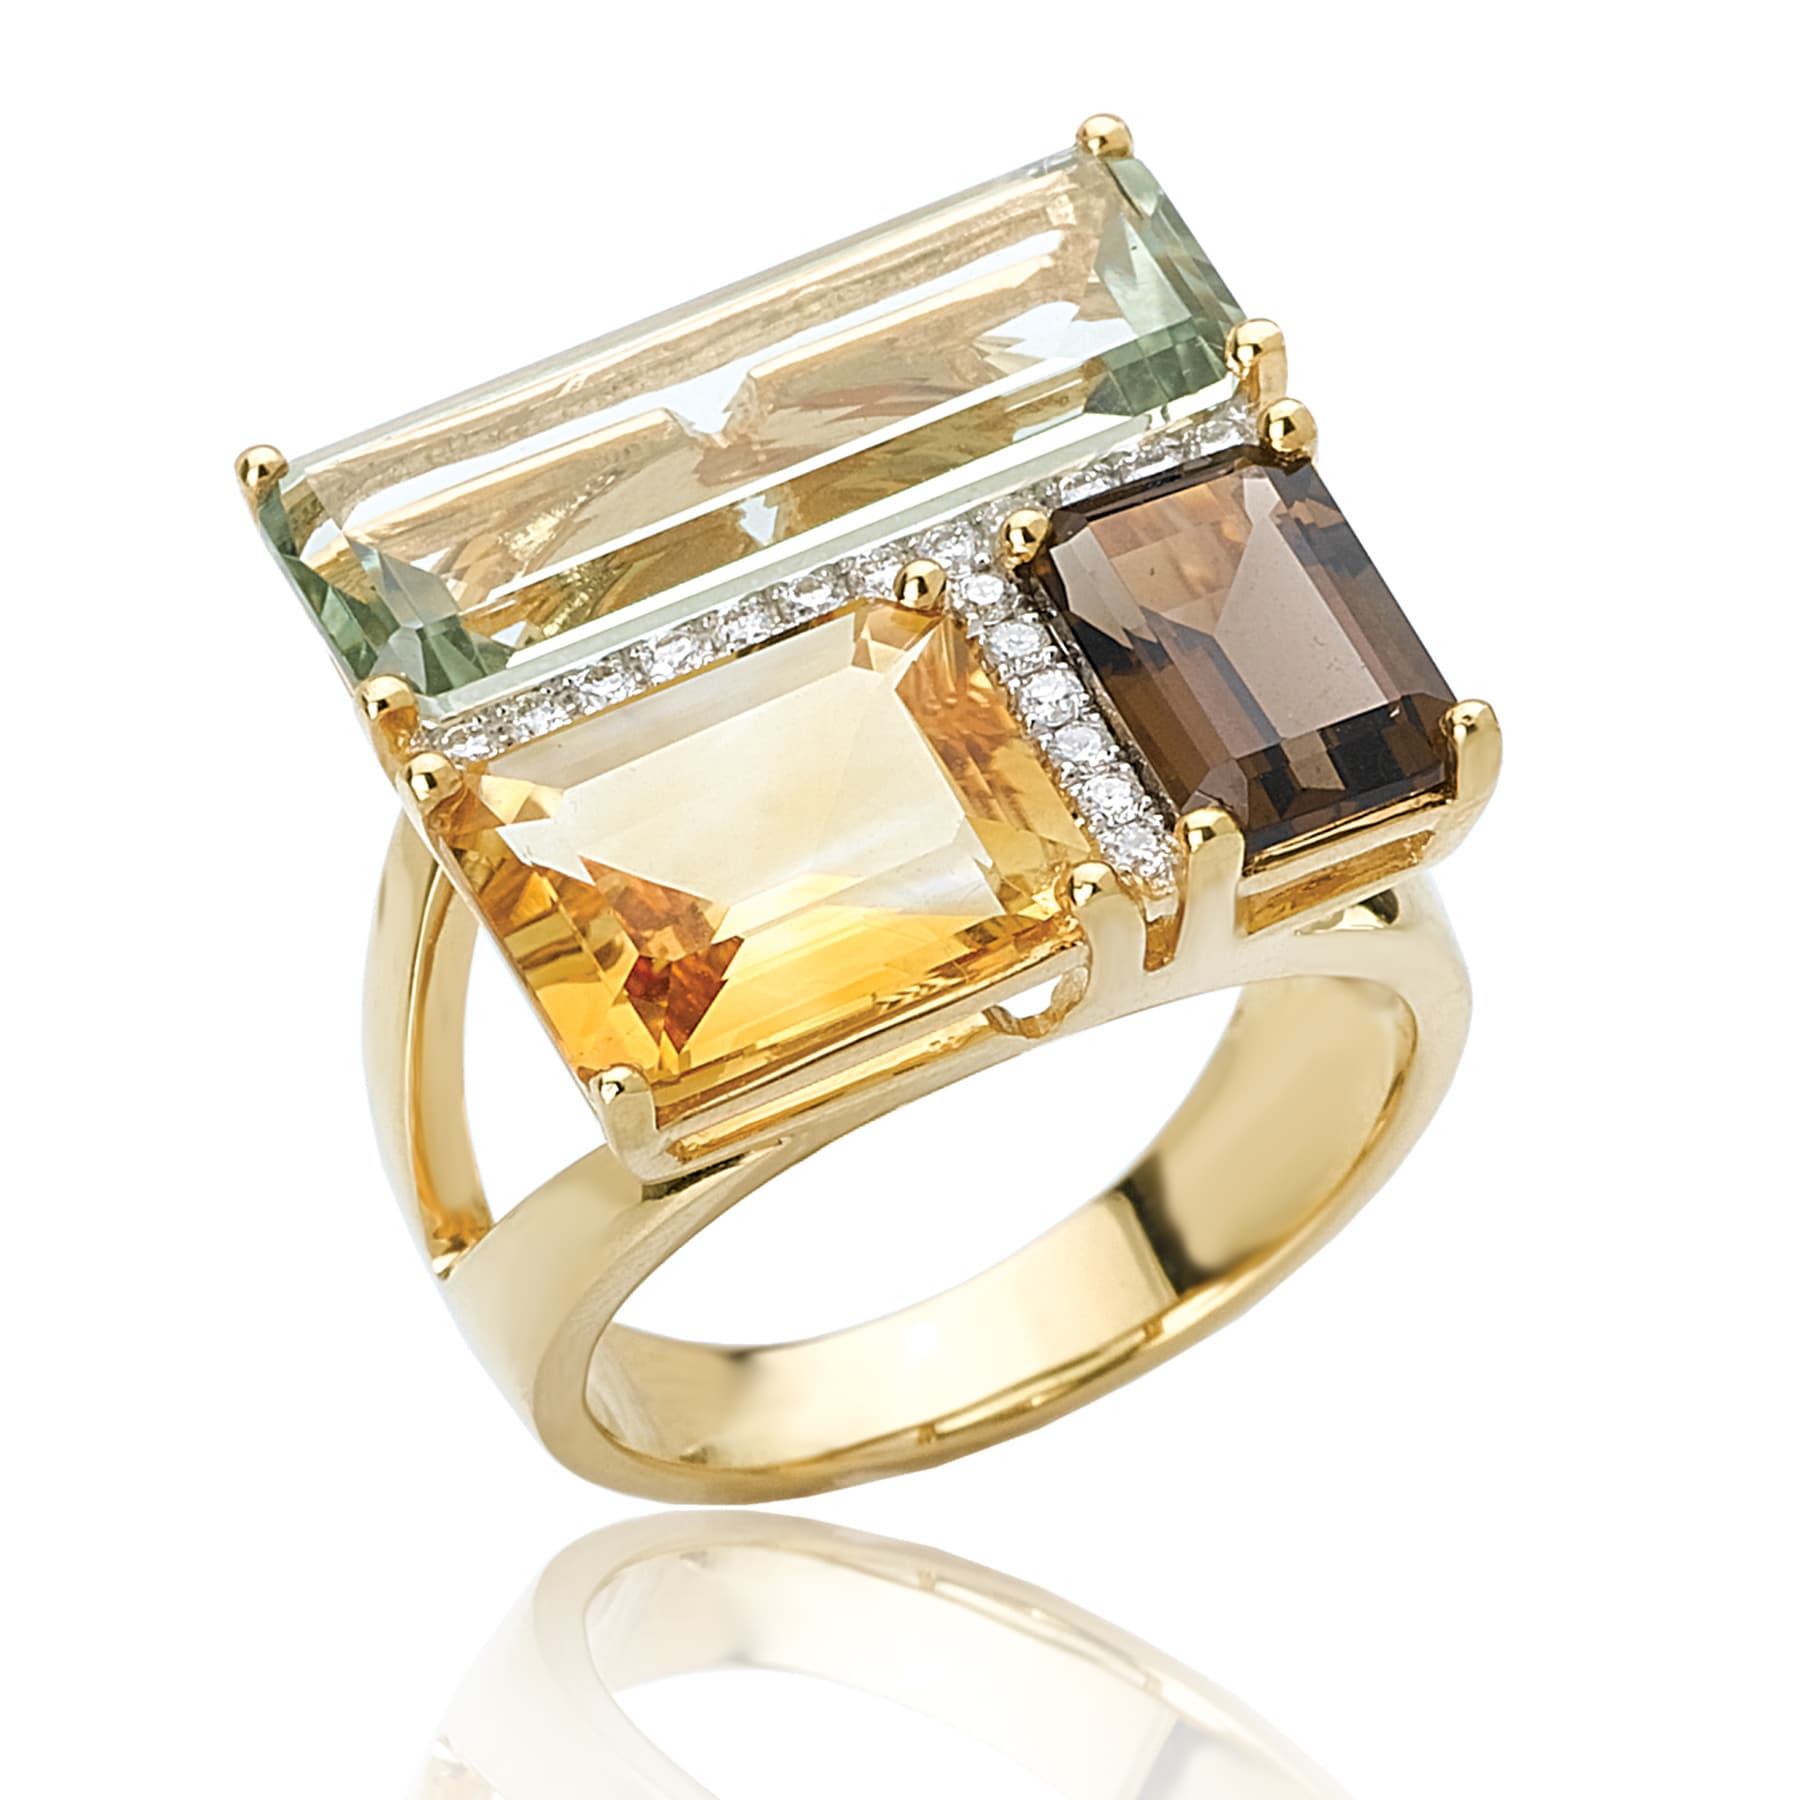 Square Gemstone Ring 925 Sterling Silver Citrine Ring Square Emerald Cut Solitaire Sz 5 6 7 8 9 10 11 12